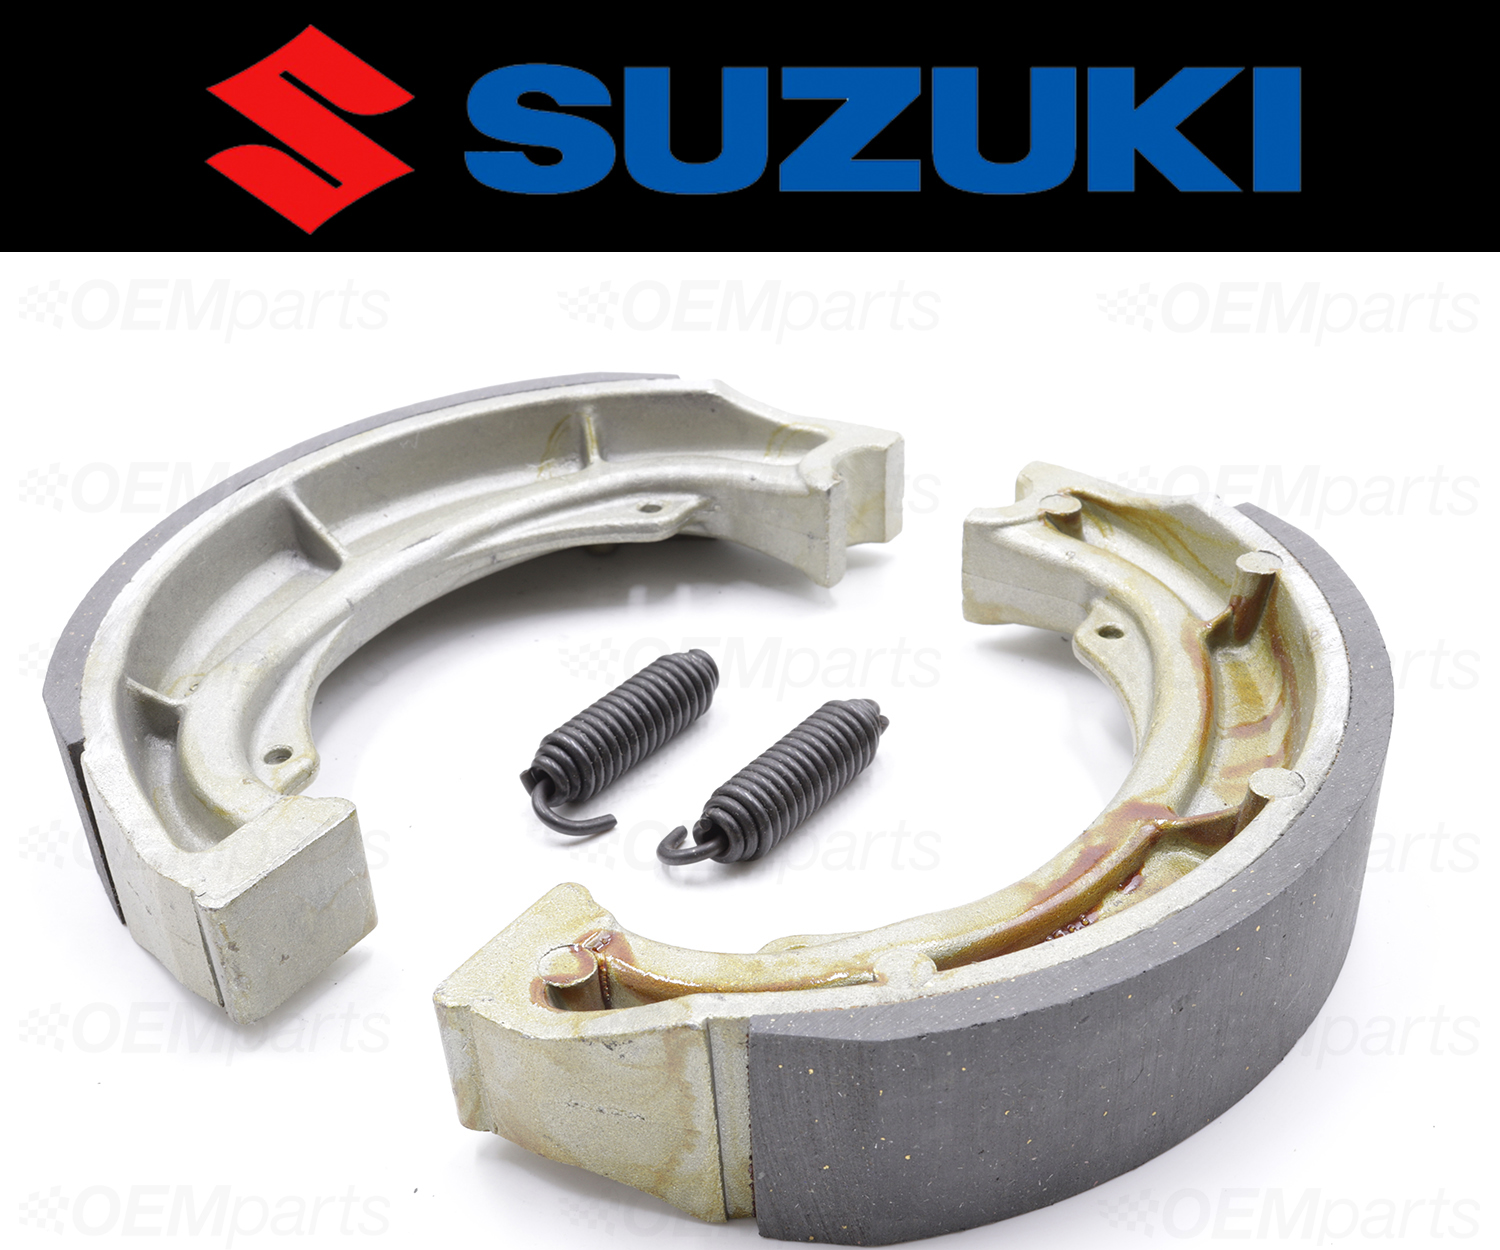 2 Suzuki REAR Brake Shoes and Springs #64400-11870 Set of See Fitment Chart